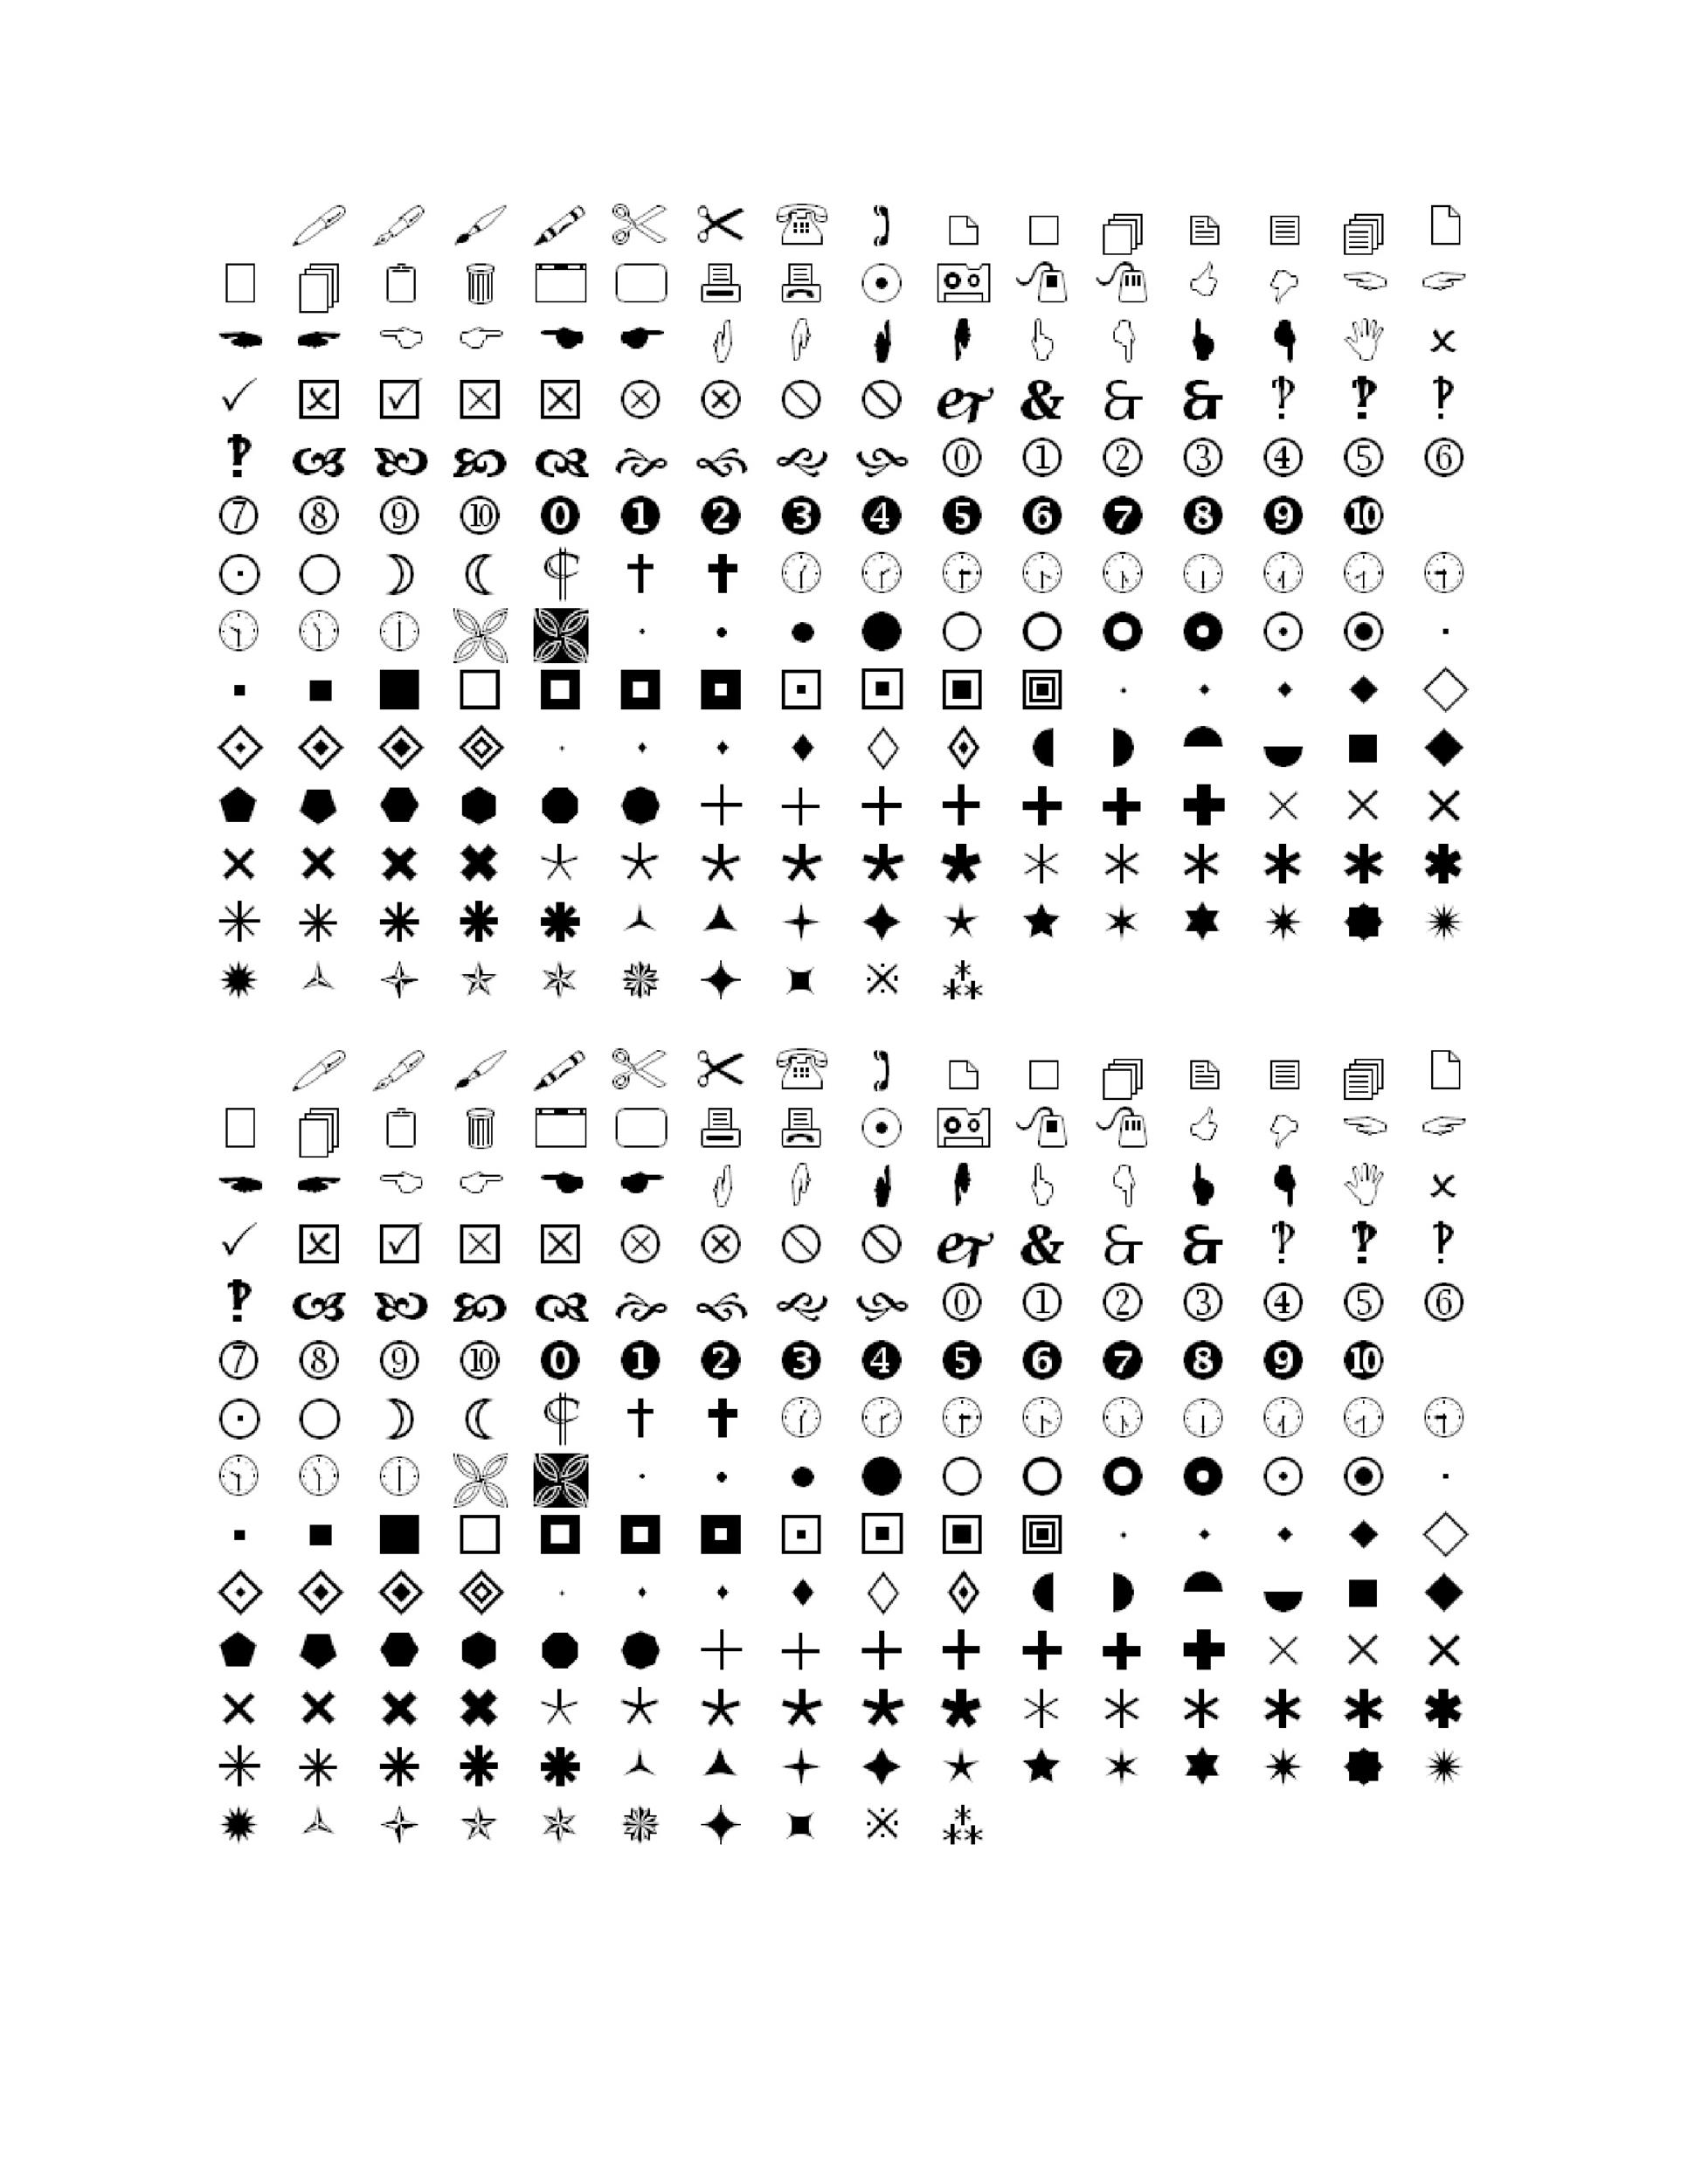 Free wingdings translator template 41